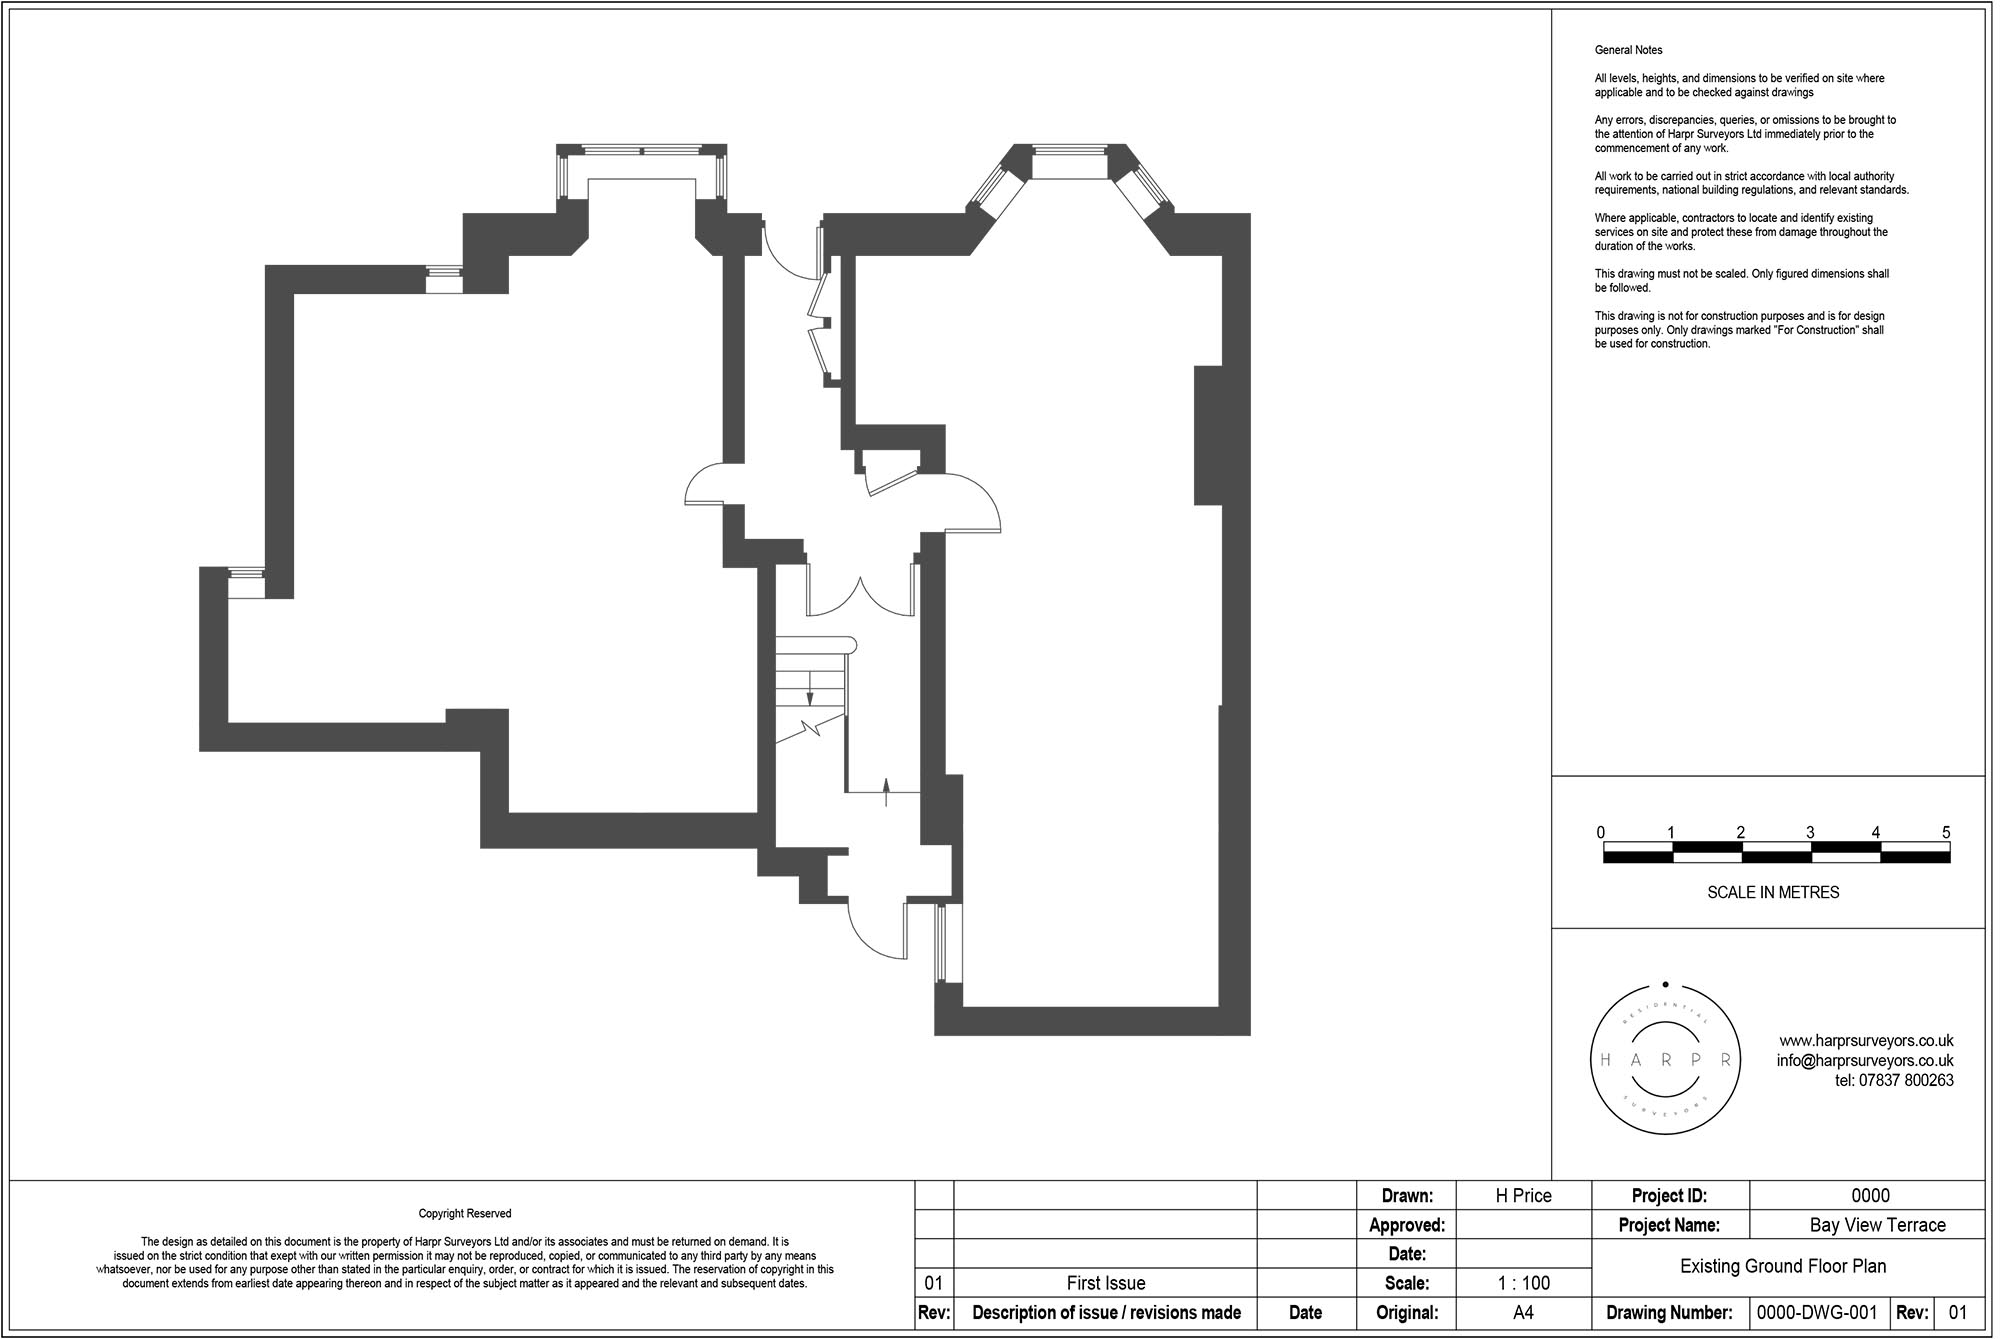 Bay View Terrace Scaled Floor Plan